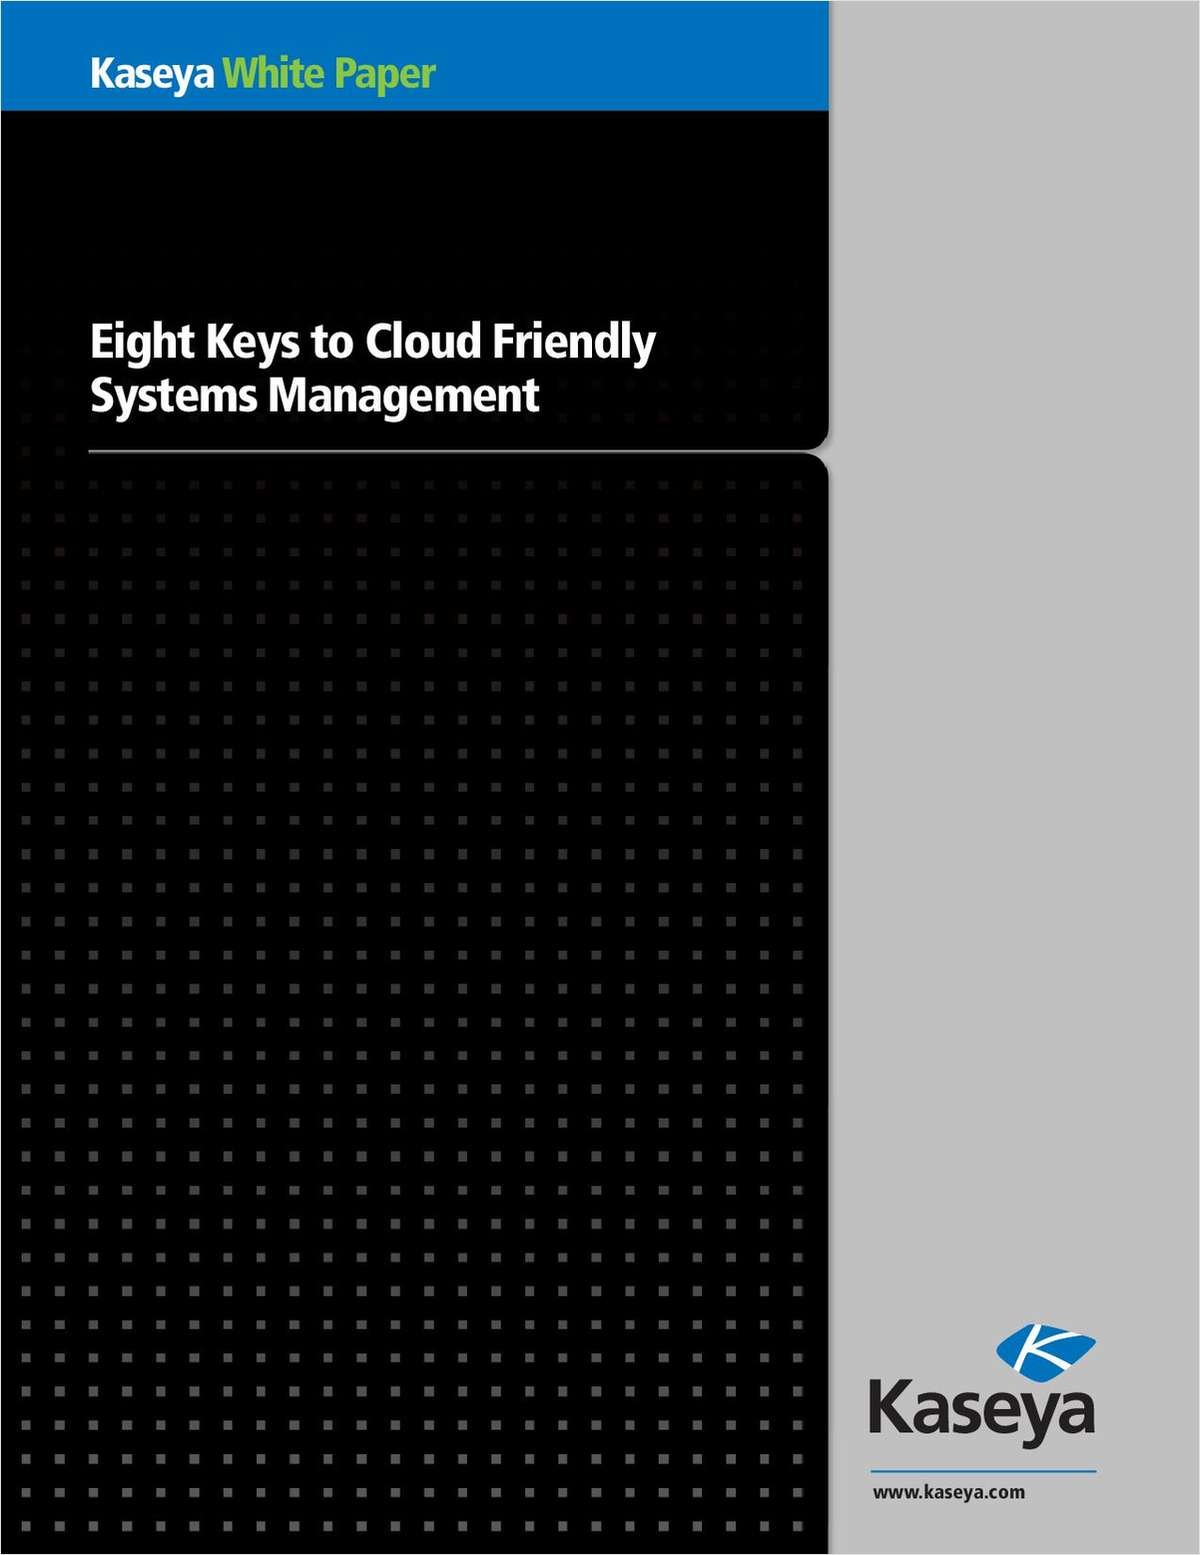 8 Keys to Cloud Friendly Systems Management